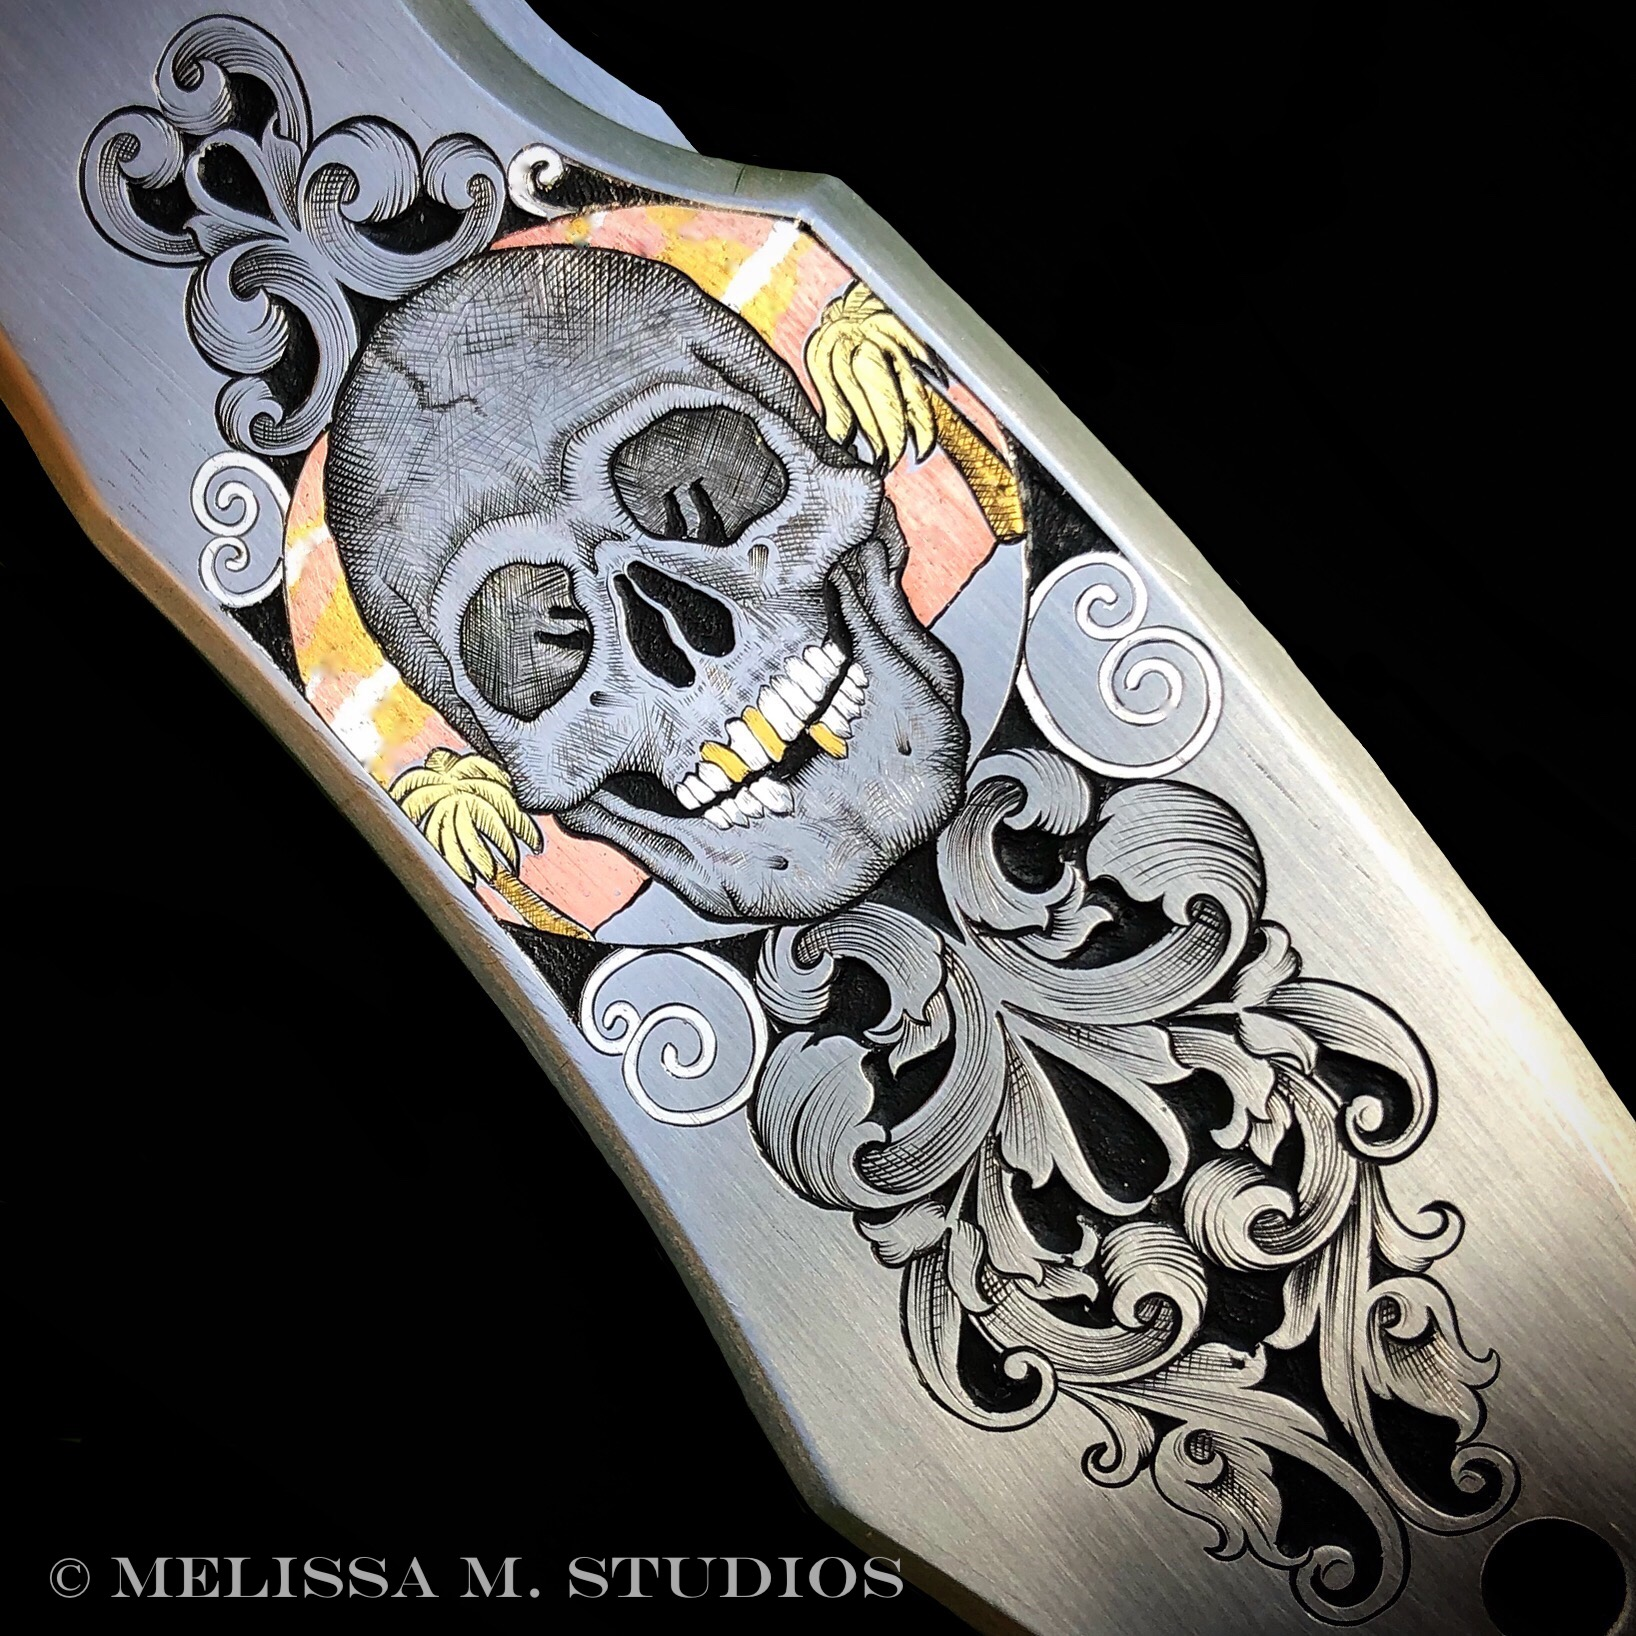 Engraved Pocket Knife | Jeff Parke Design